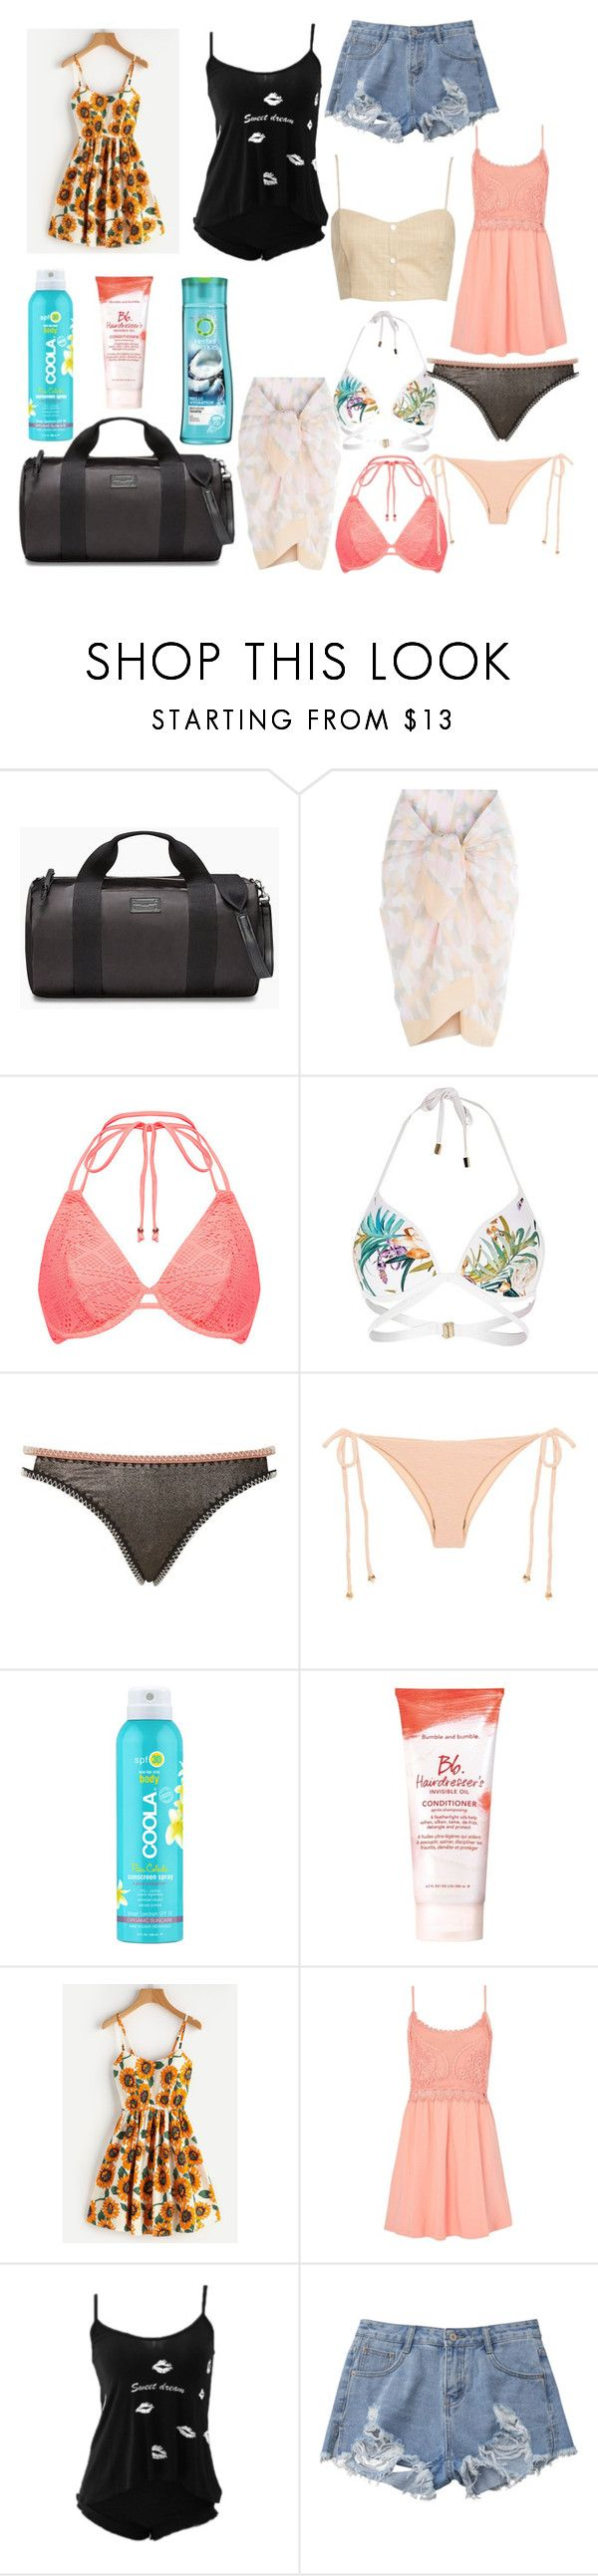 """weekend trip"" by ivelletjei ❤ liked on Polyvore featuring Rebecca Minkoff, La Perla, River Island, Topshop, Beach Riot, COOLA Suncare, Herbal Essences, Bumble and bumble and Leith"